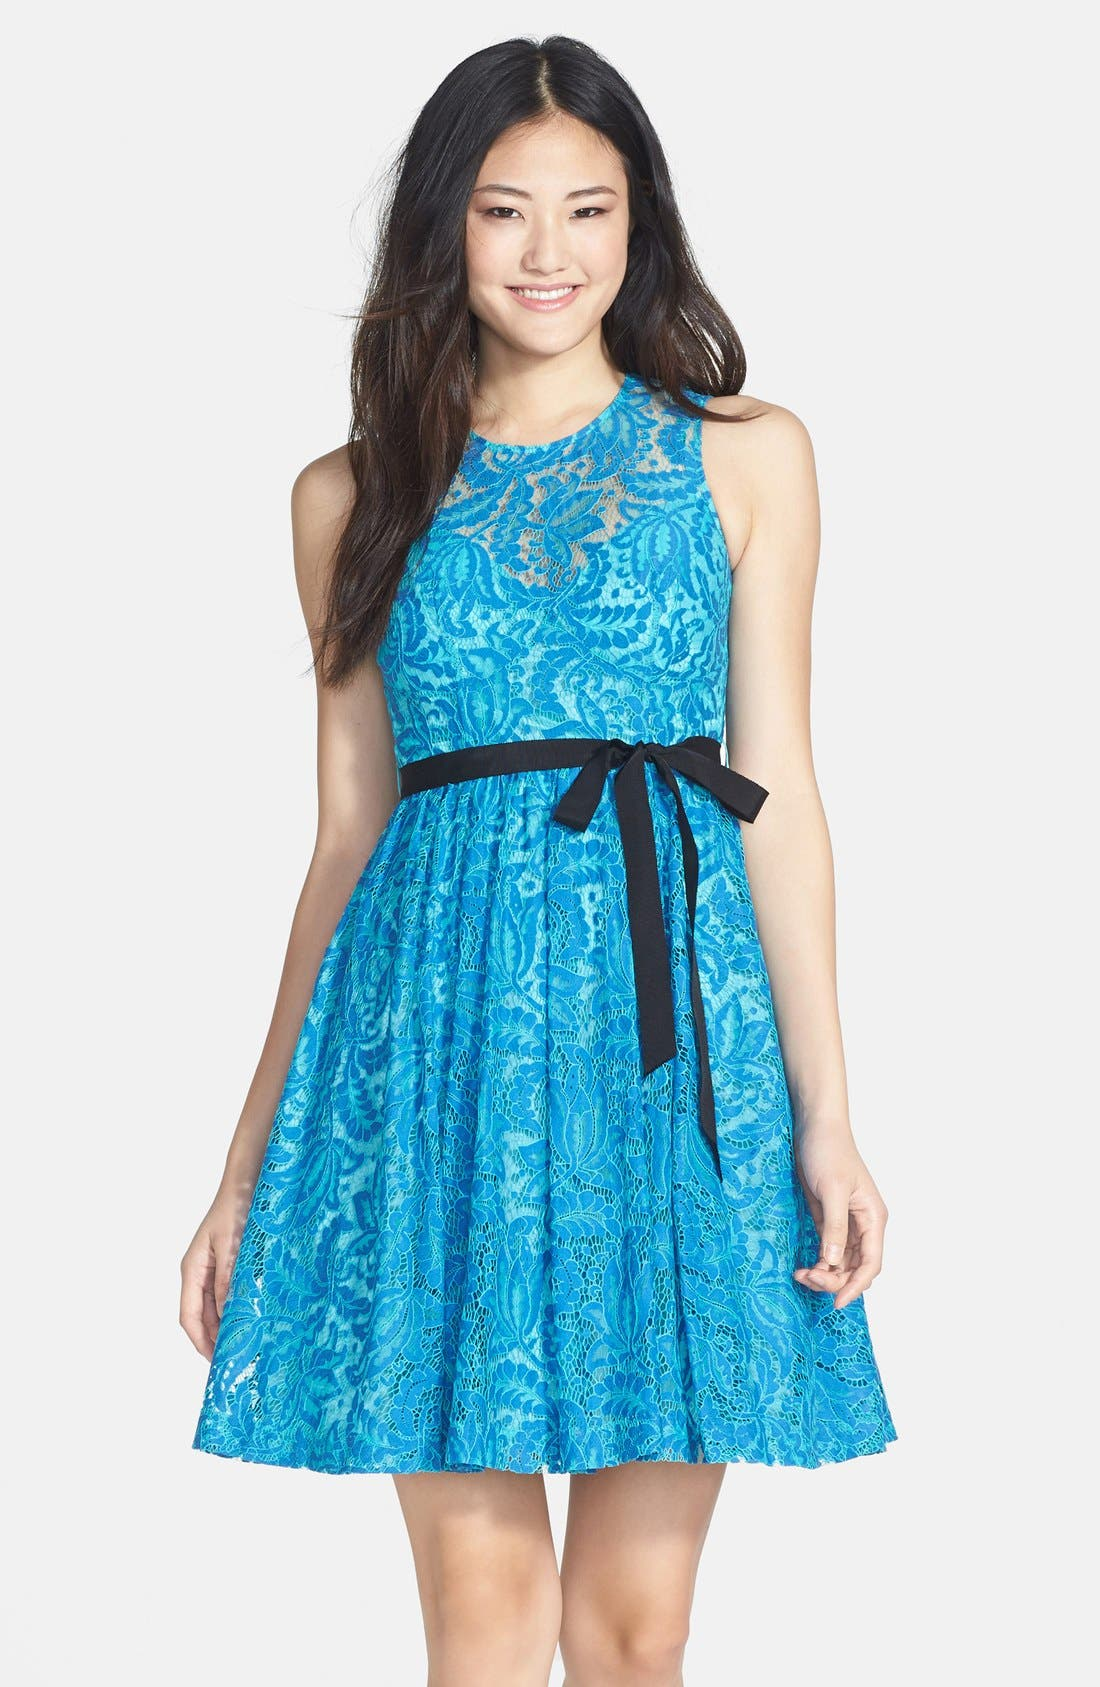 Alternate Image 1 Selected - Plenty by Tracy Reese 'Alana' Lace Fit & Flare Dress (Petite)